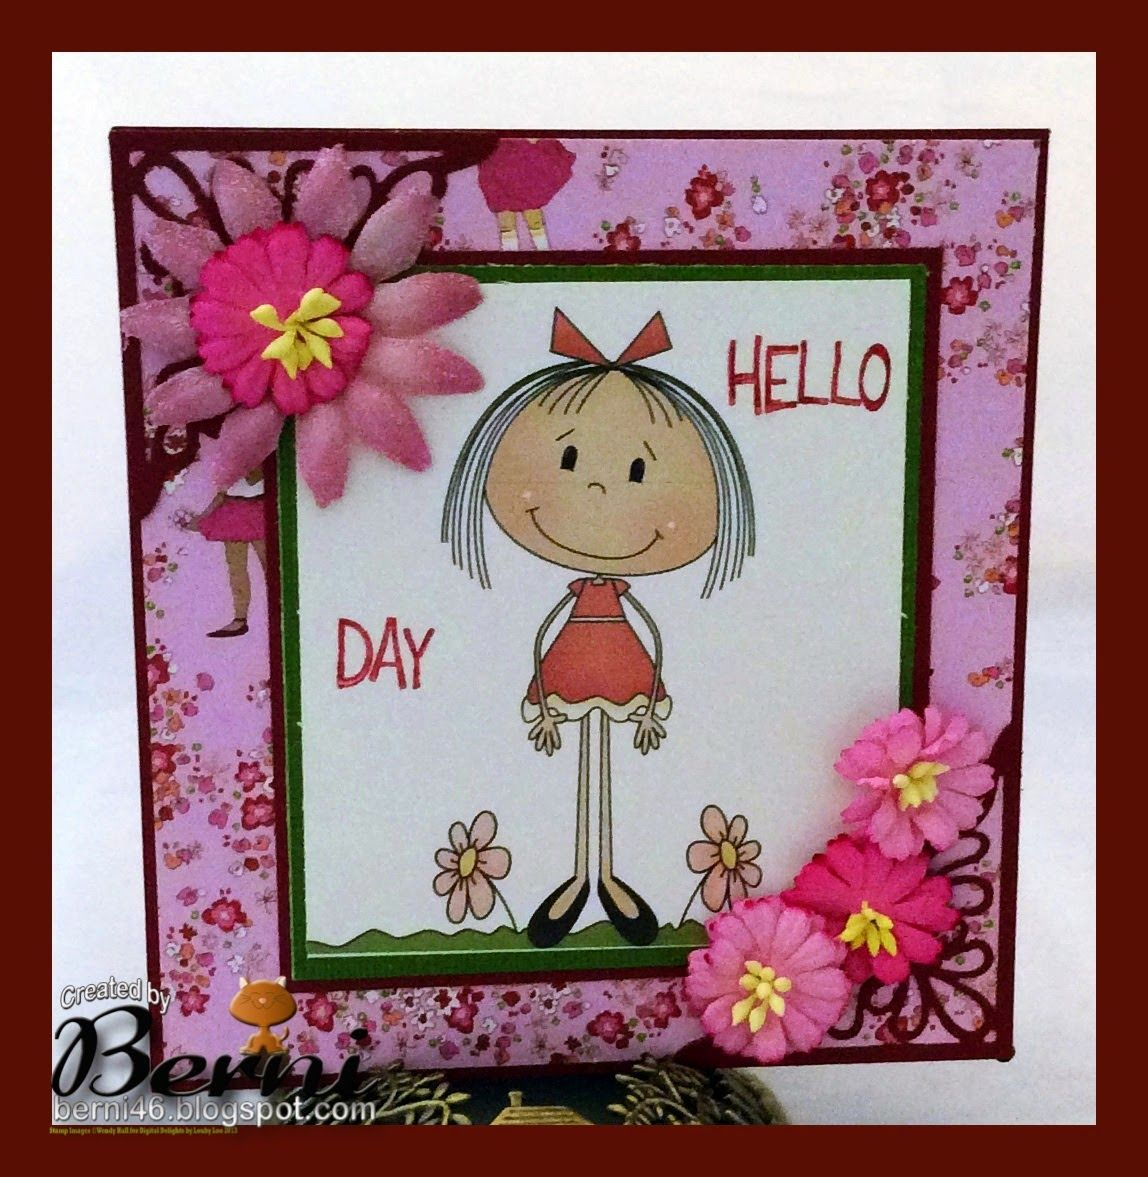 Send A Smile 4 Kids Challenge Blog: TEAM S.A.S. Card by Berni